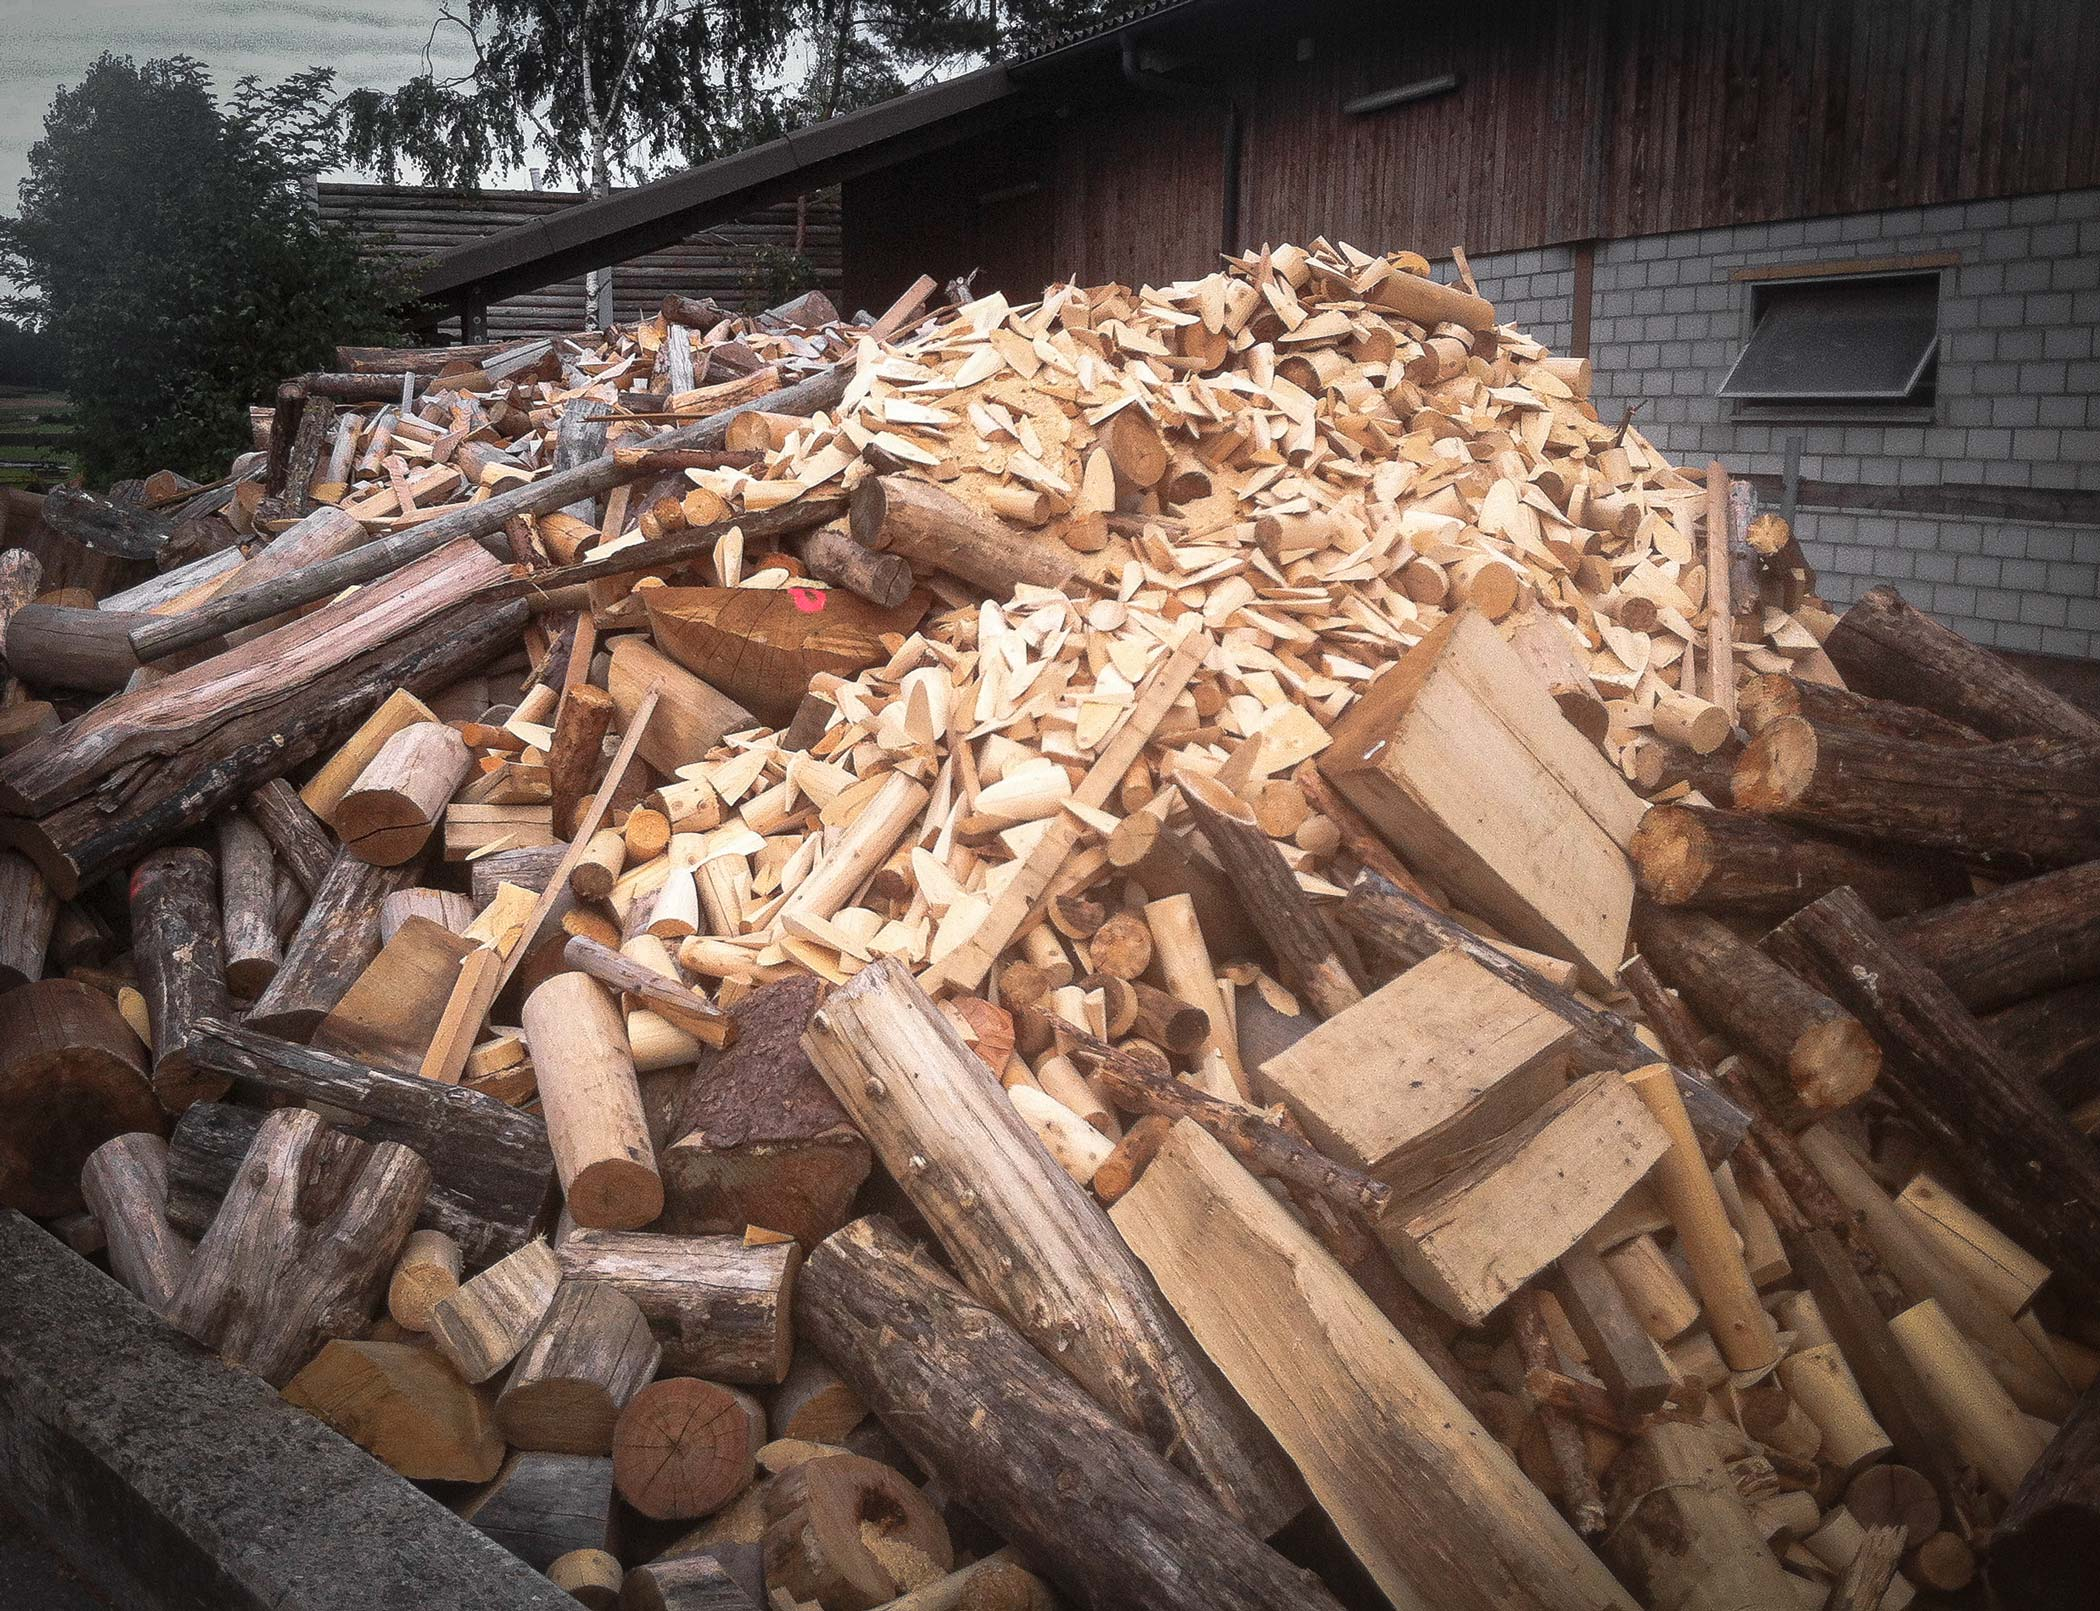 Wood from tree trunks on a pile before shredding for wood chip production